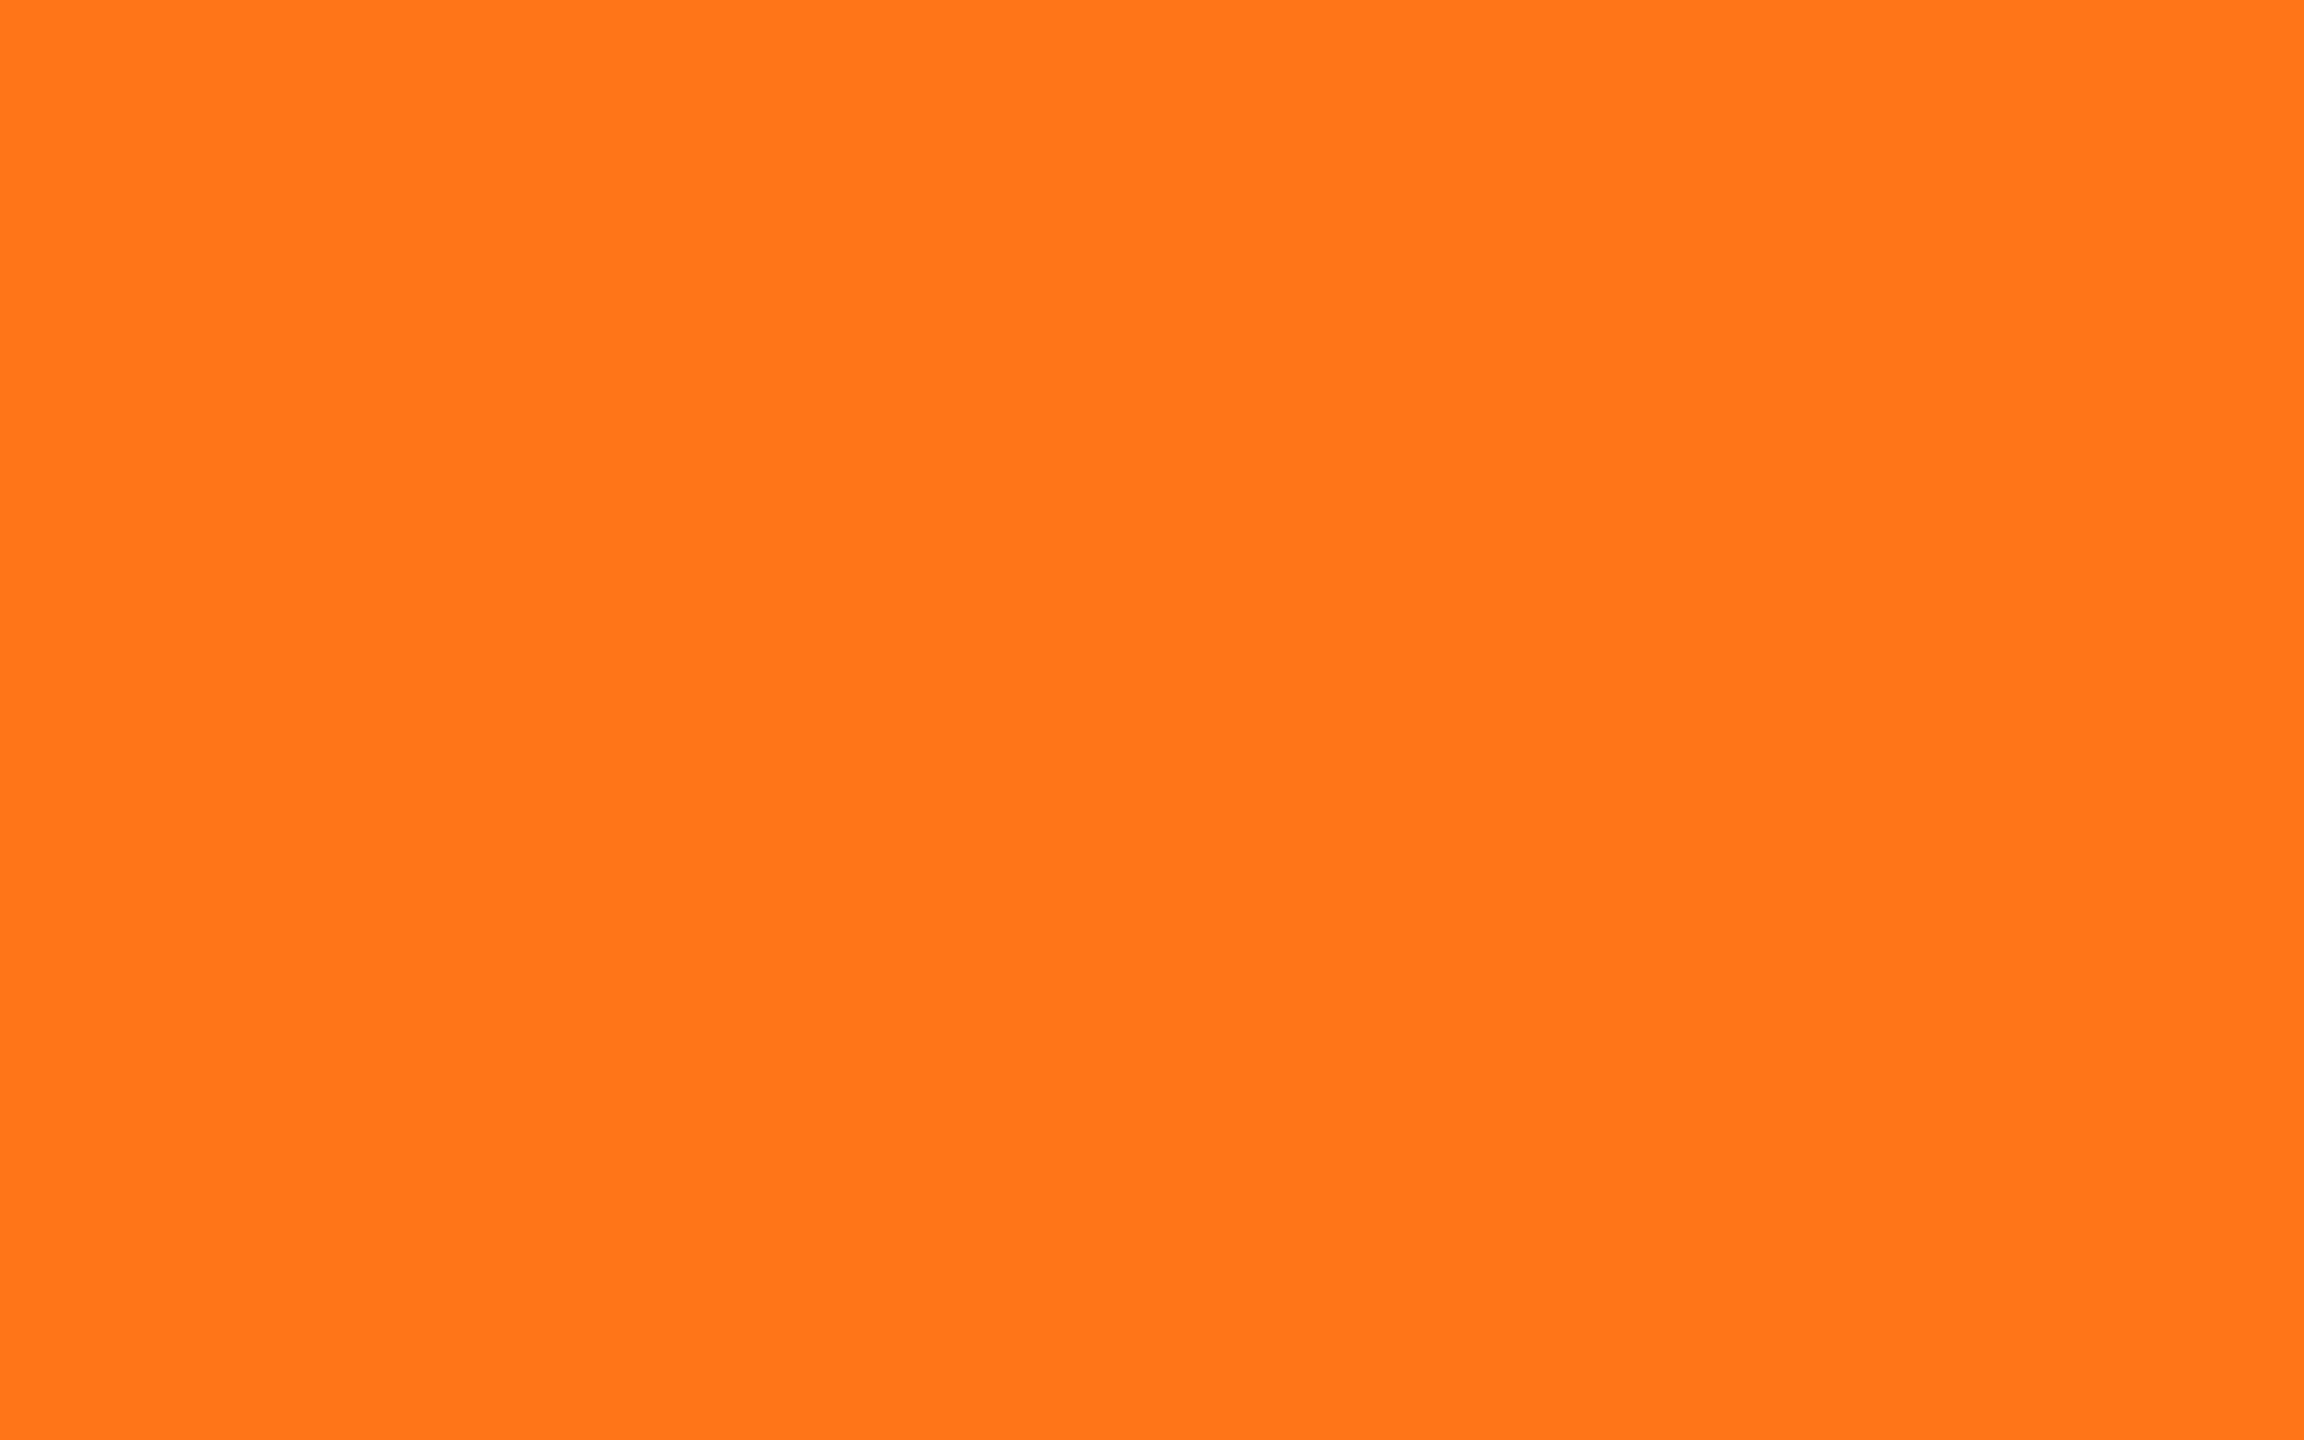 2304x1440 Pumpkin Solid Color Background